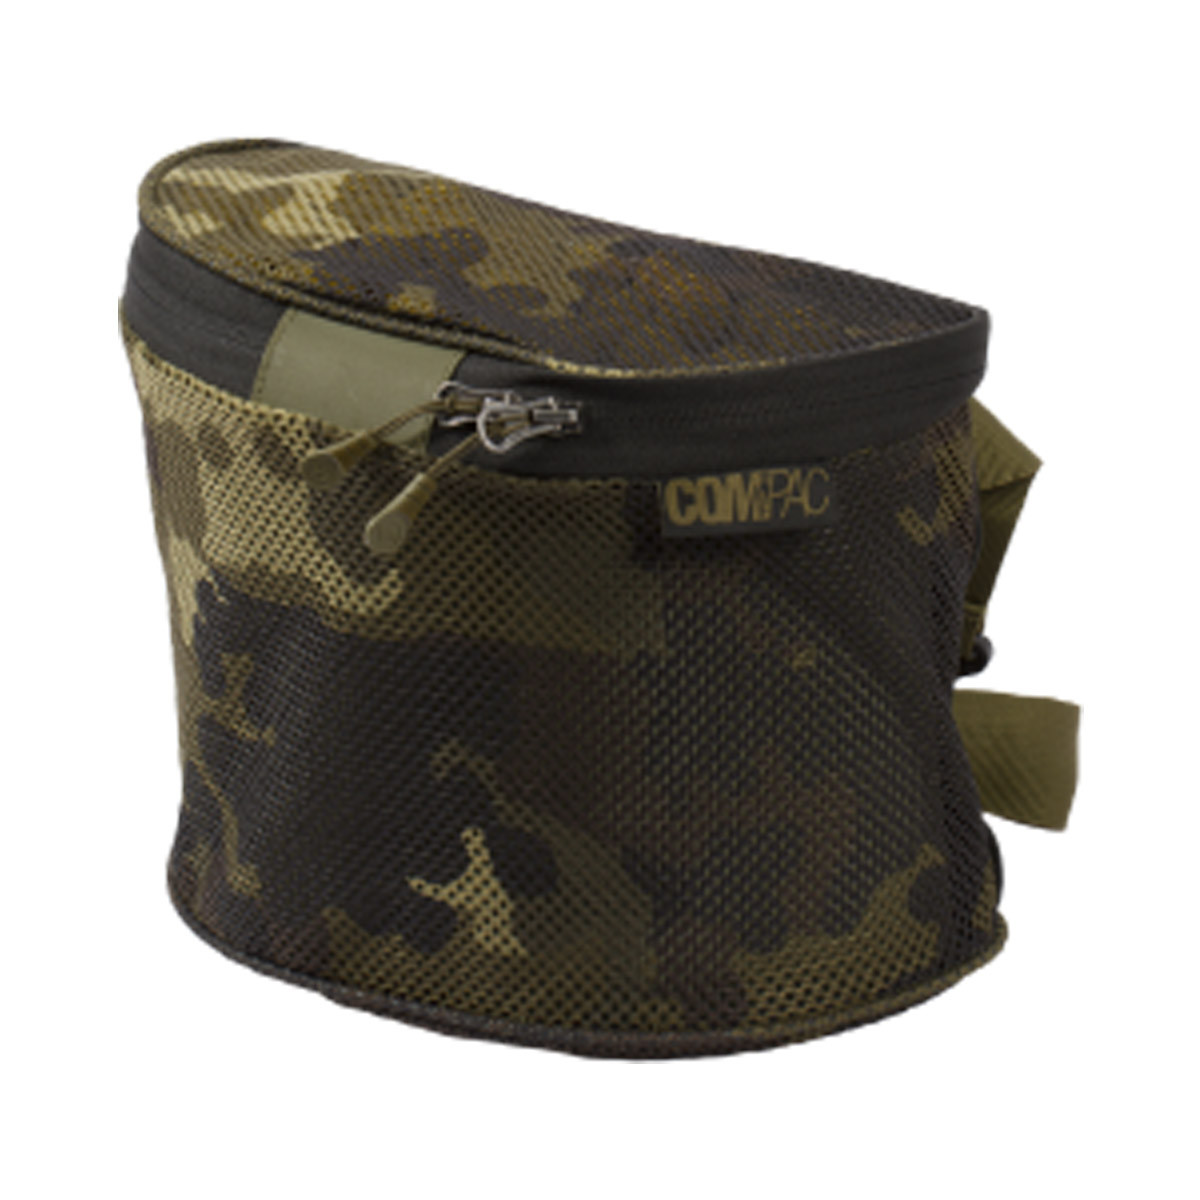 Korda Boilie Caddy With Insert